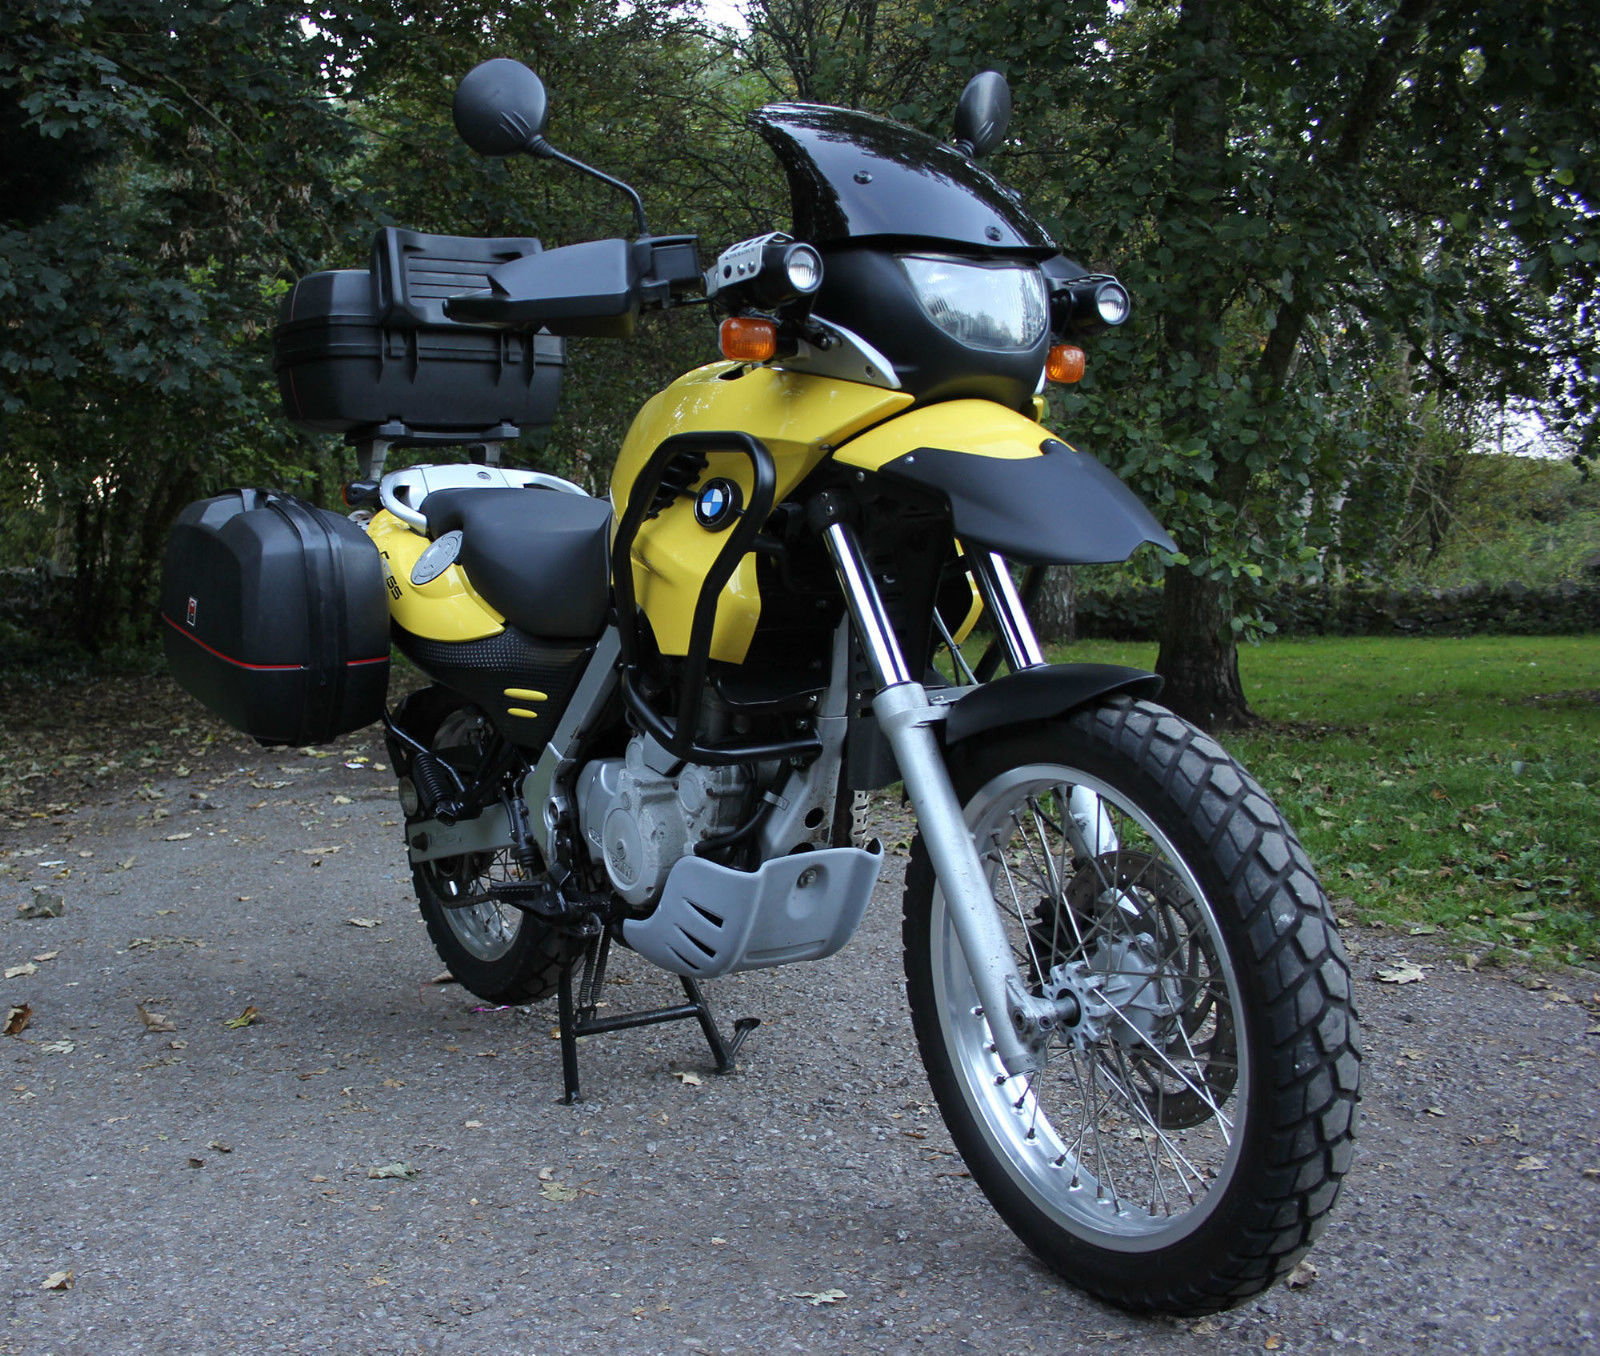 03 bmw f650gs yellow full givi luggage touratech fogs. Black Bedroom Furniture Sets. Home Design Ideas